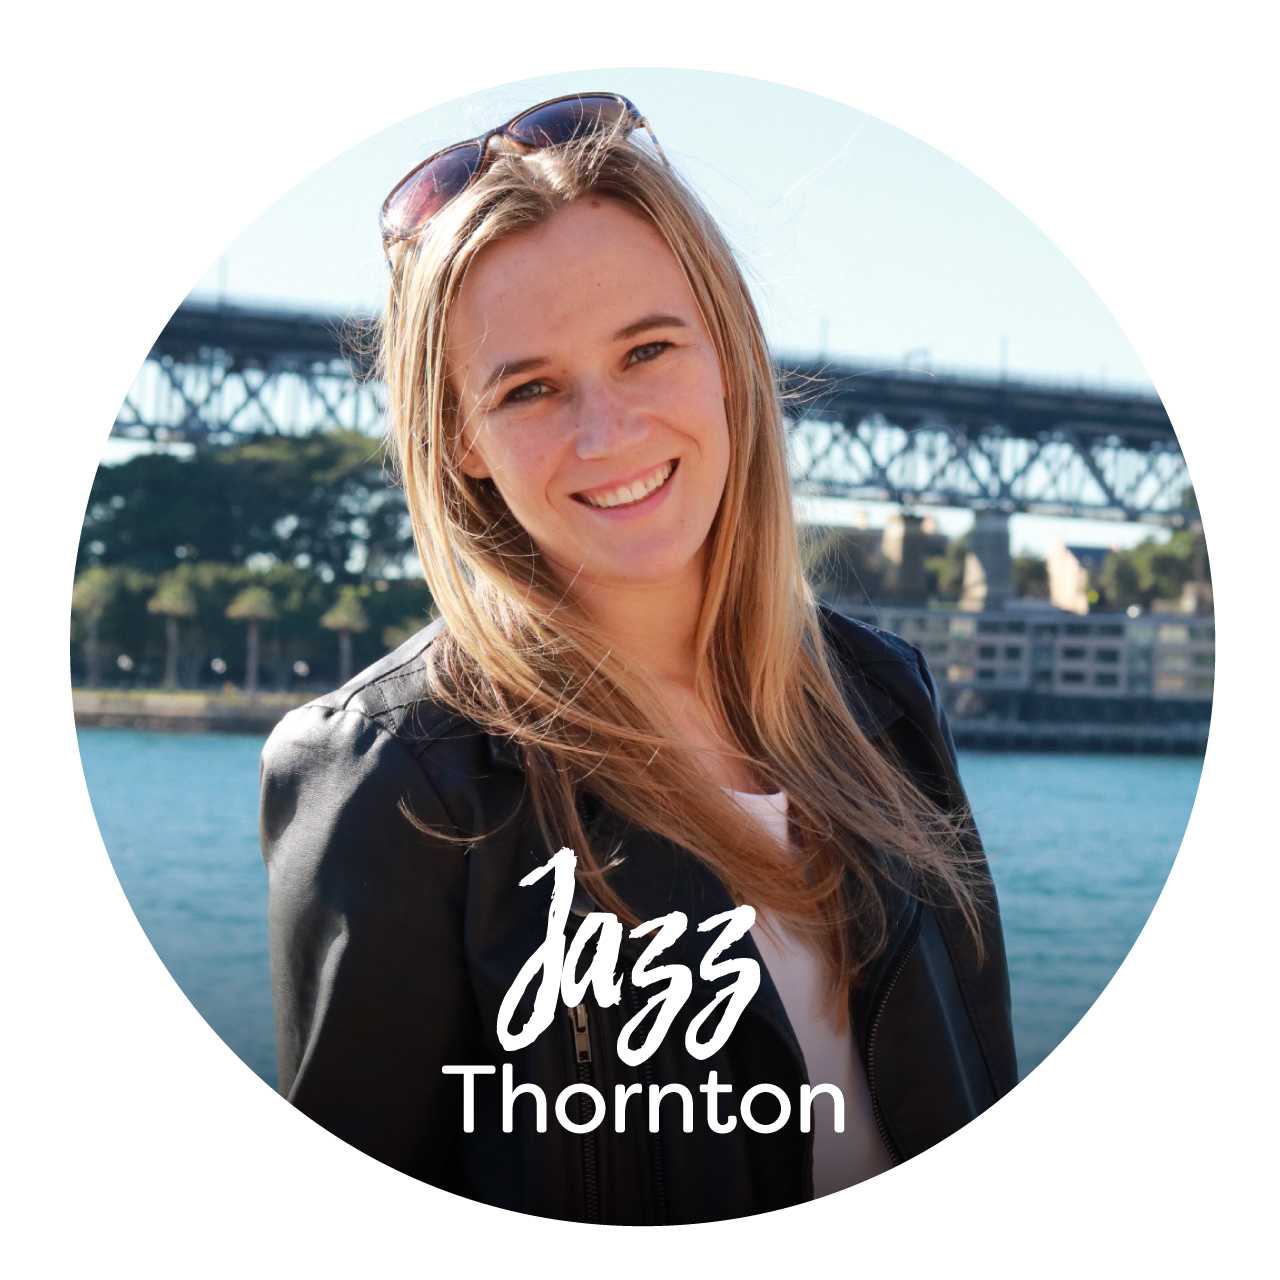 A picture of Jazz Thornton